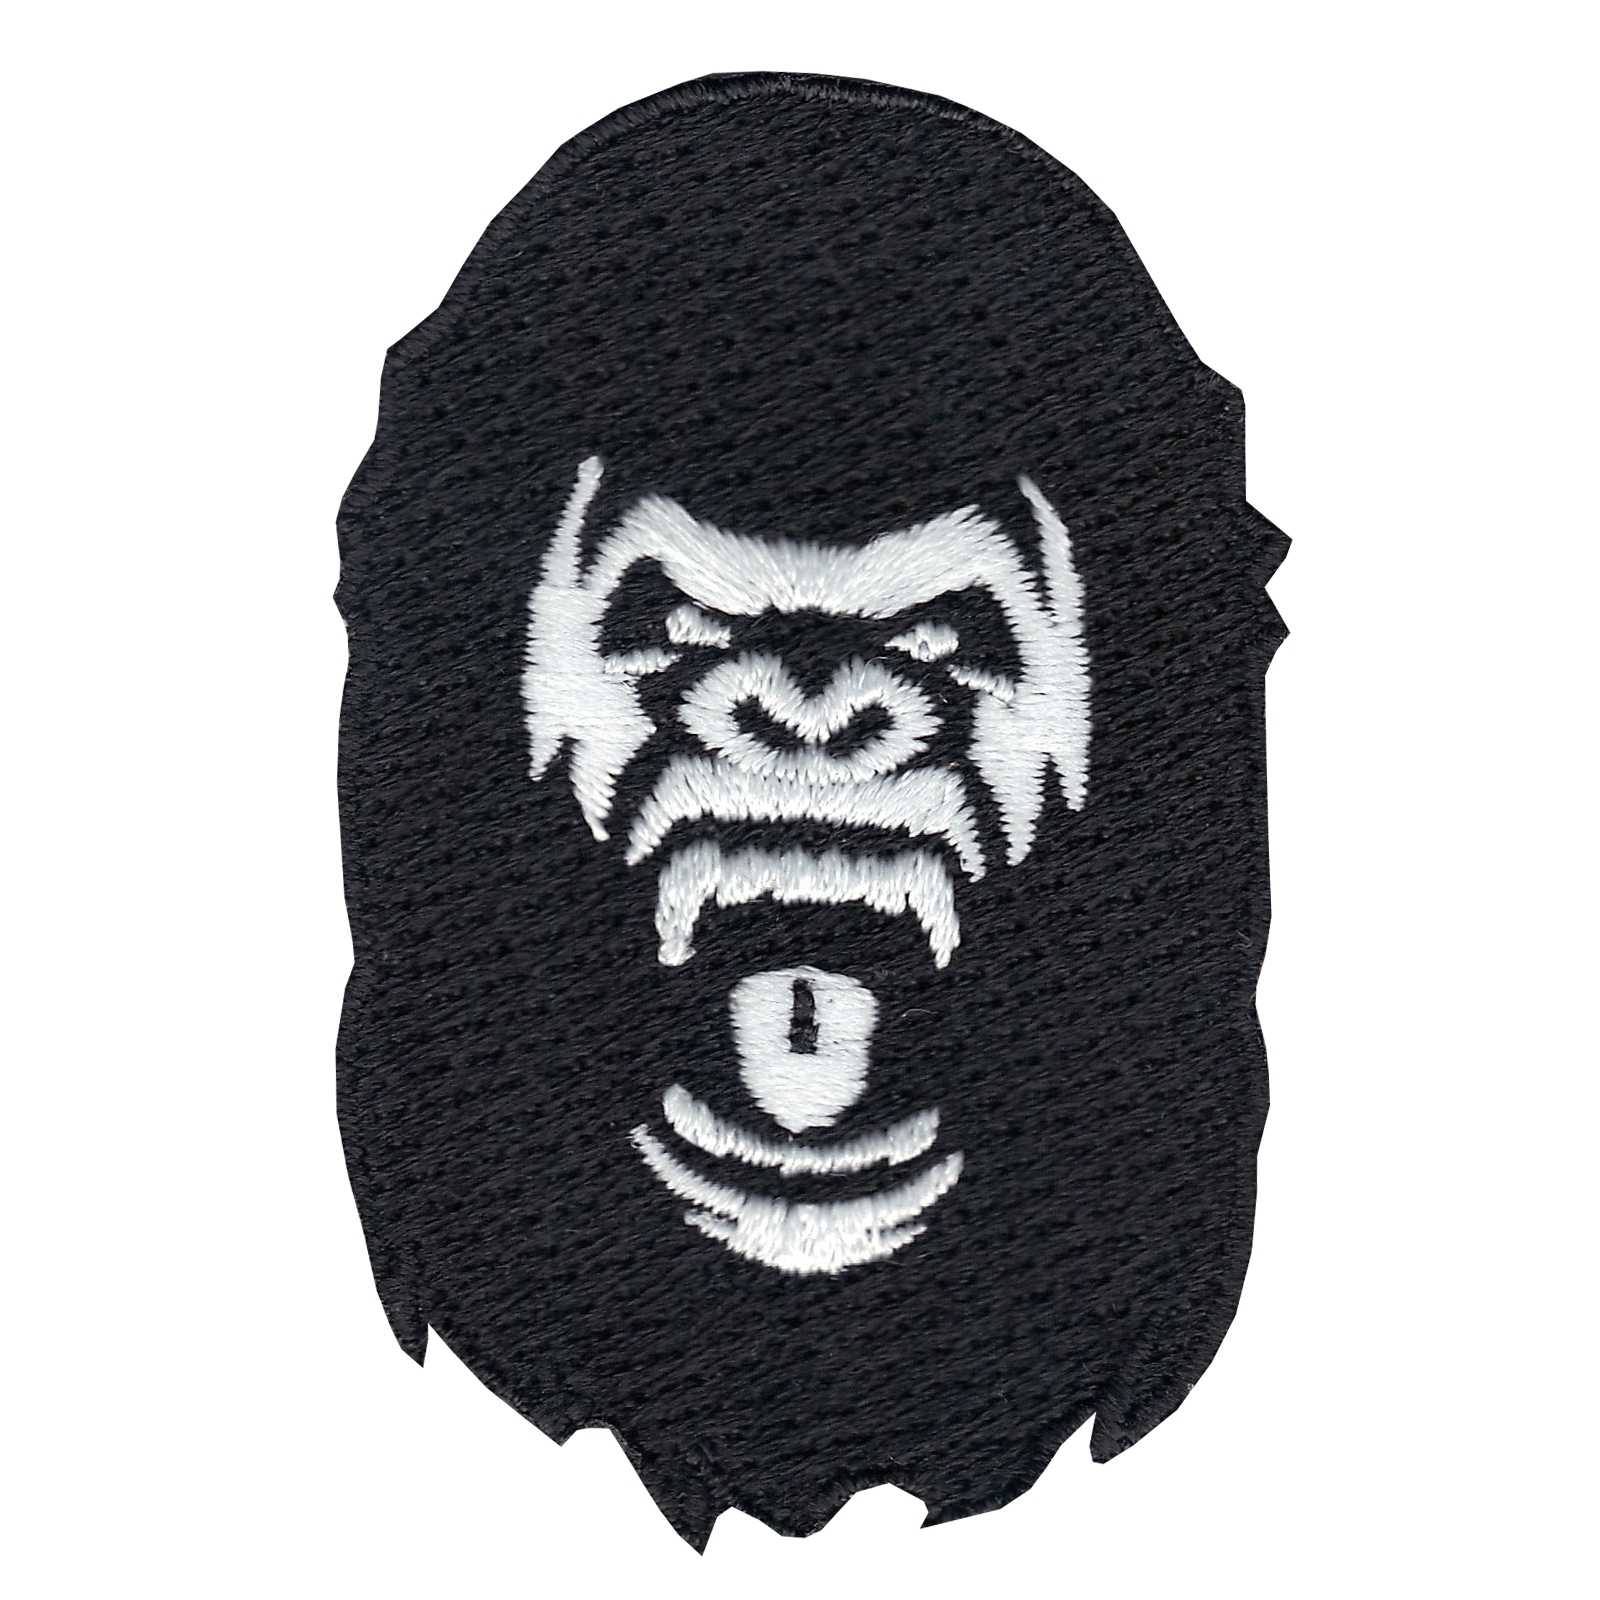 Ape Head Iron On Applique Patch